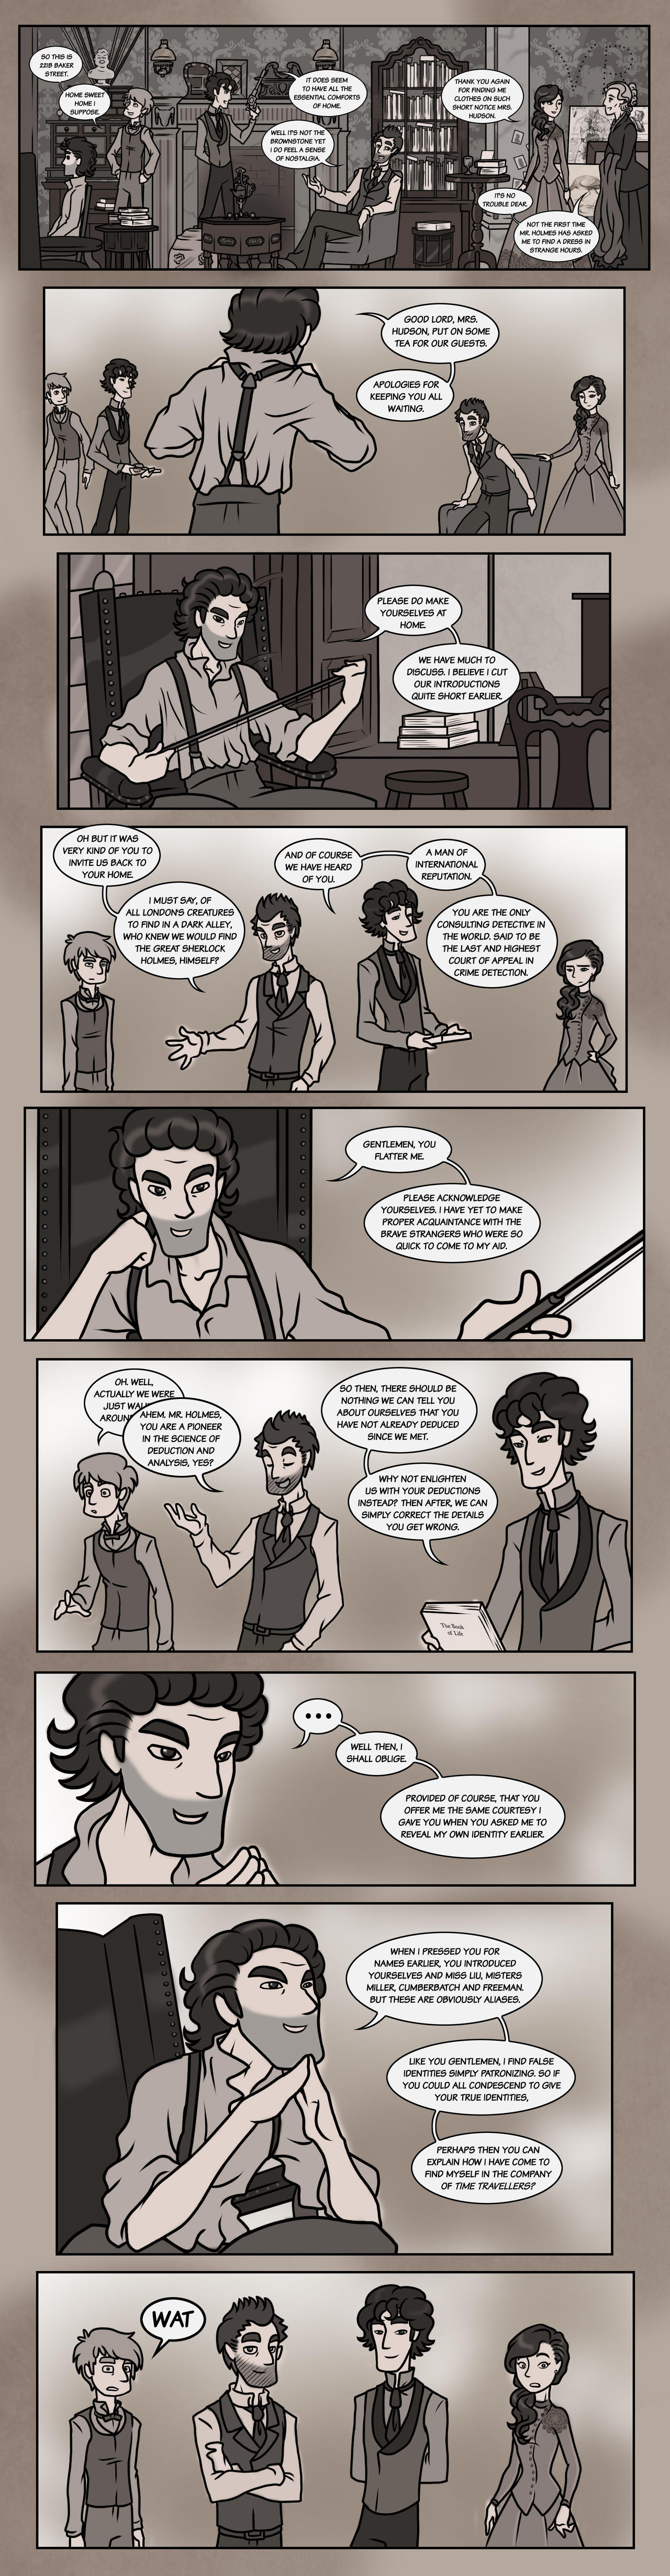 Elementary/Sherlock Special: Part Five by maryfgr23